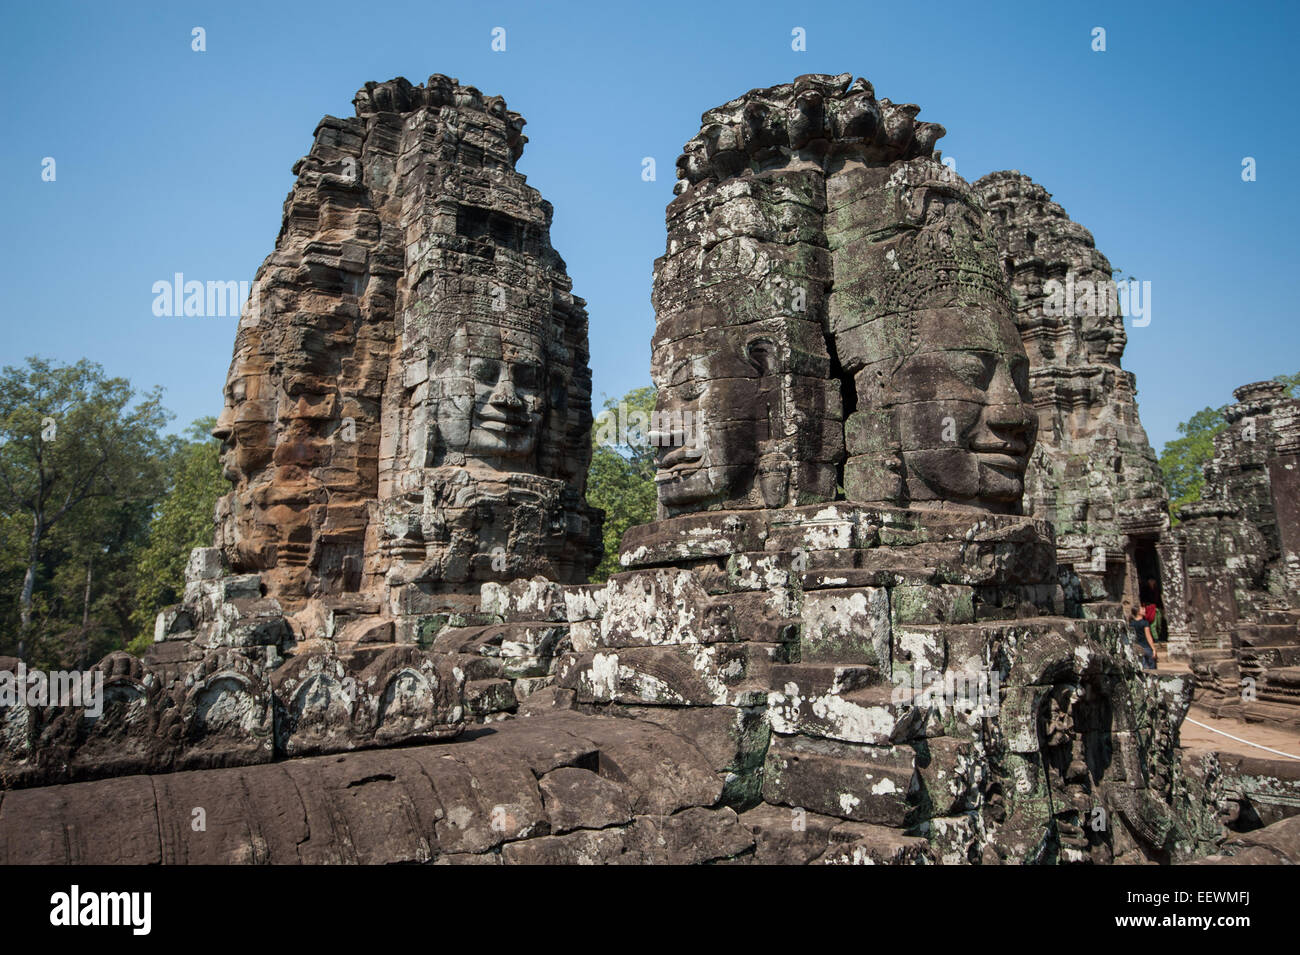 Carved stone heads of bayon temple angkor wat cambodia